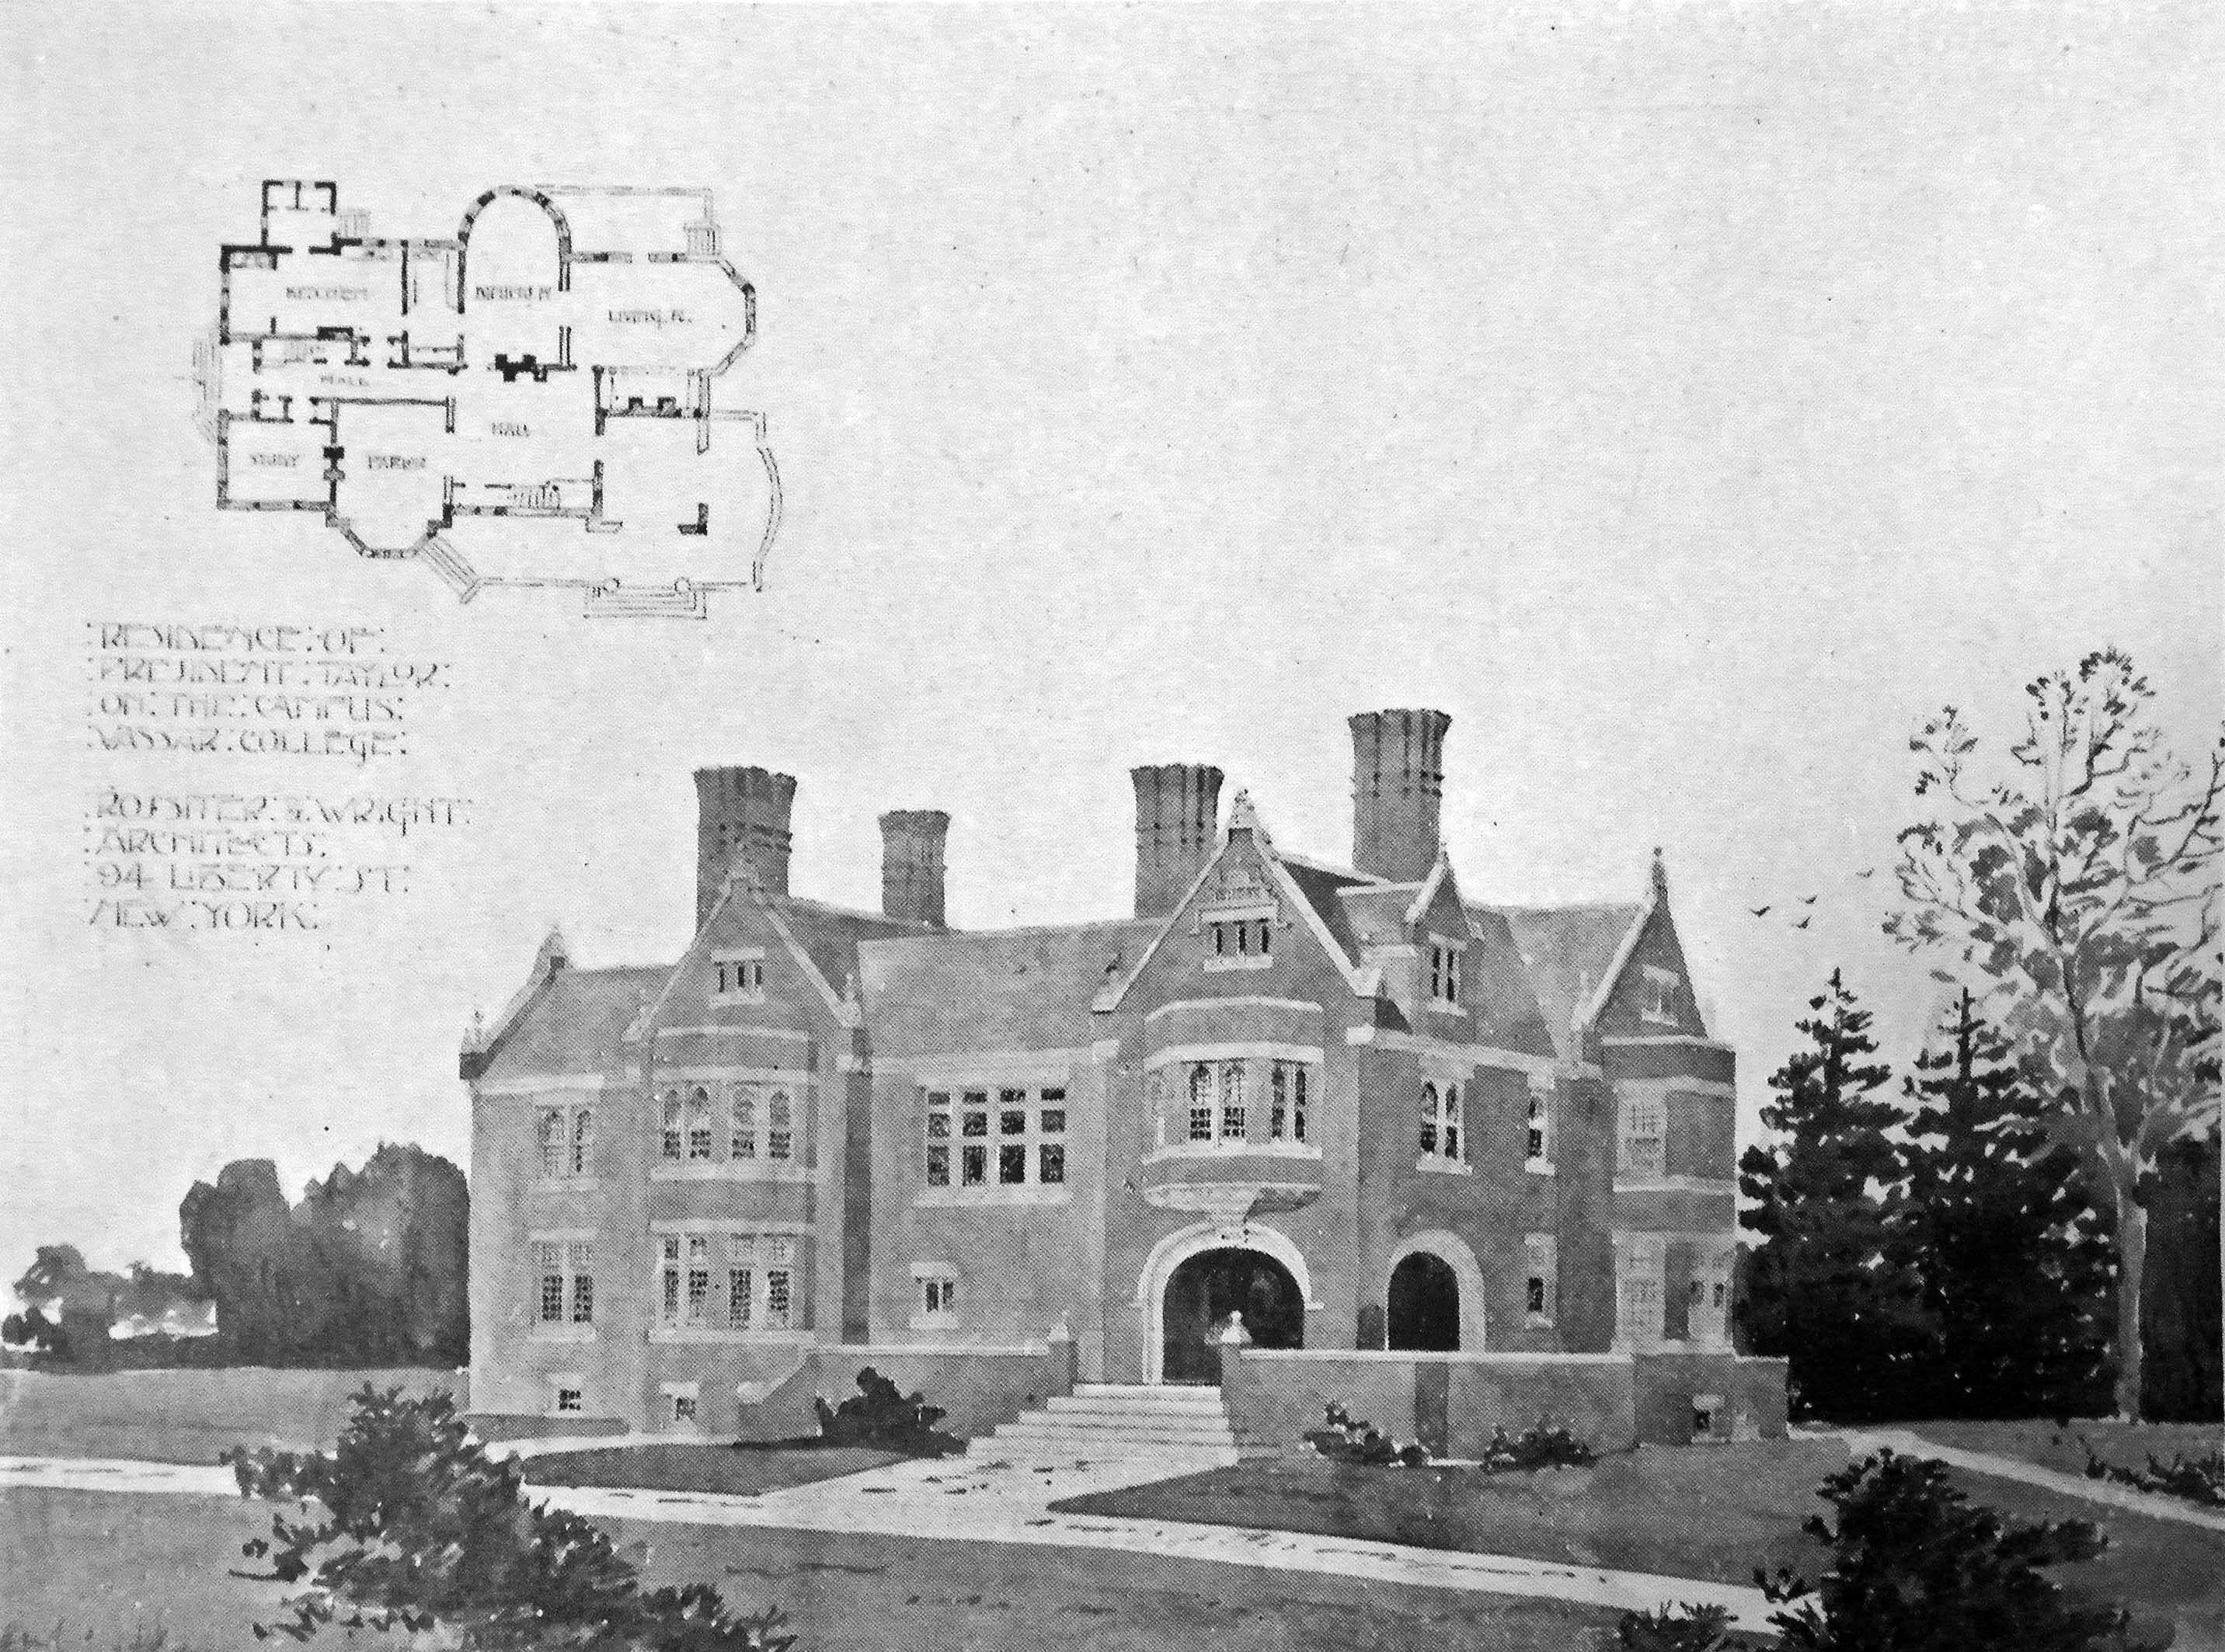 The architect's rendering of the medieval revival style President's House